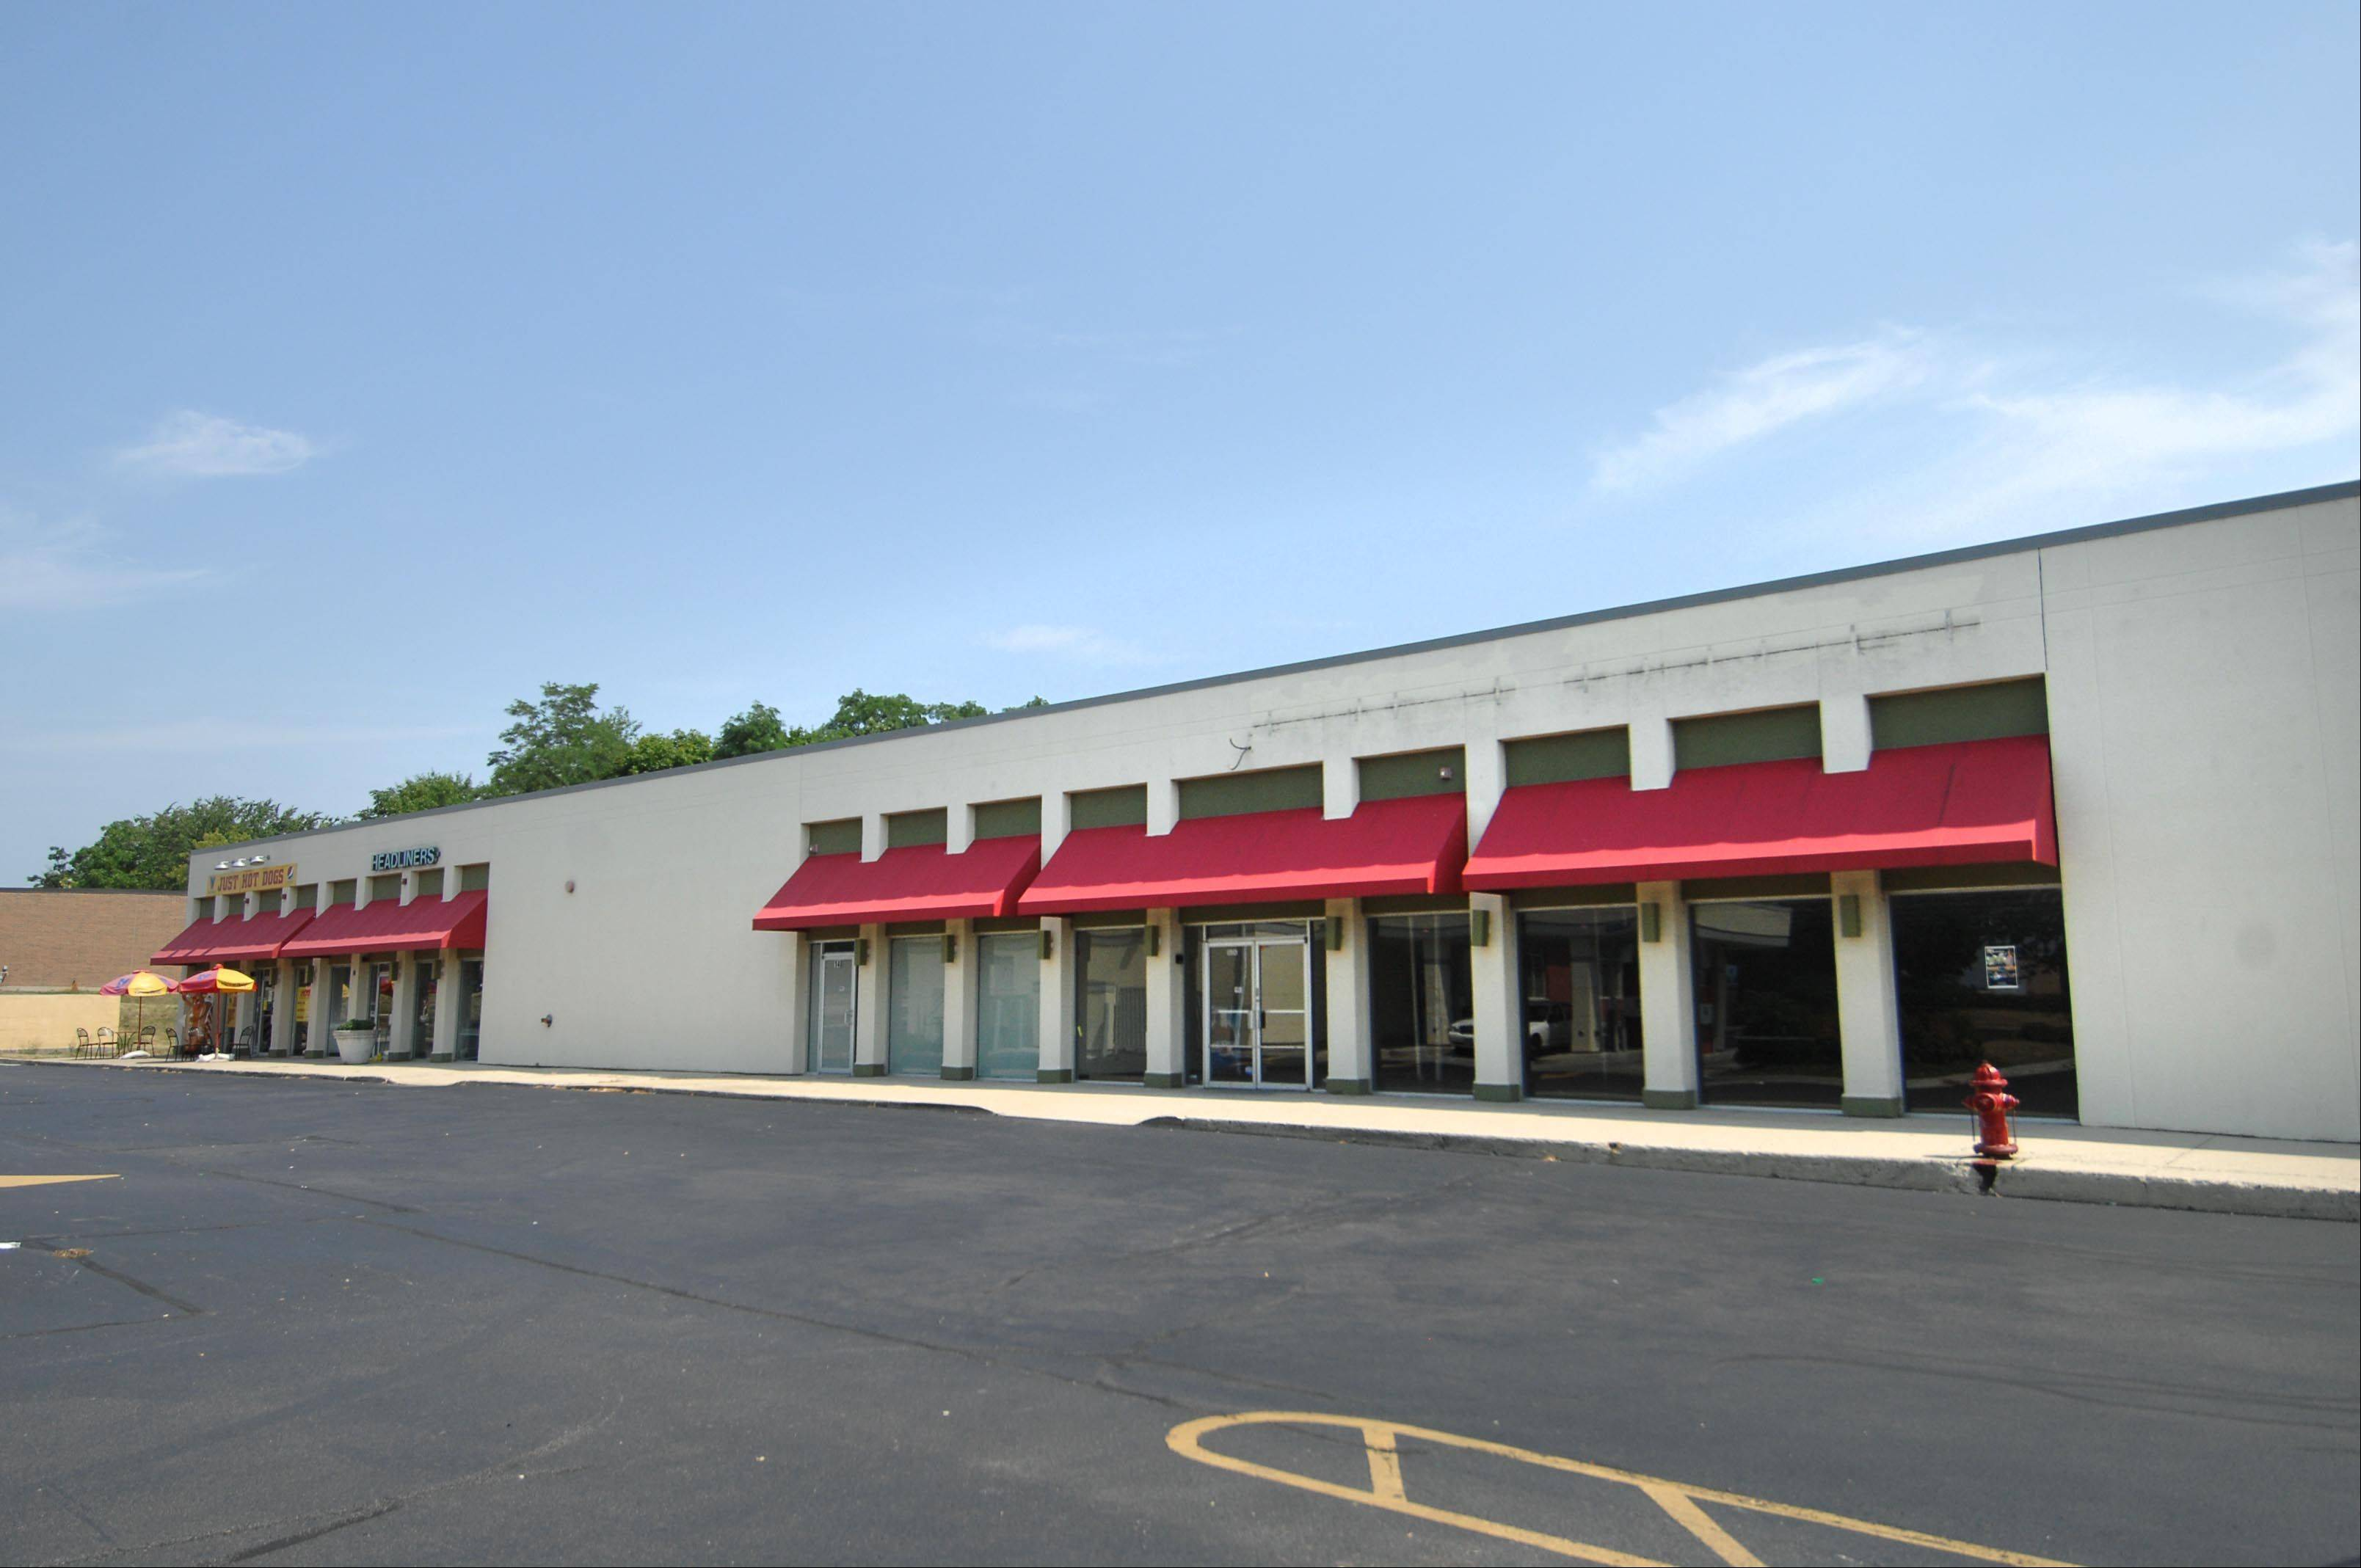 The former Dollar General store in Carpentersville has been closed due to poor performance, a corporate spokeswoman said. The store on the village's east side remains open.